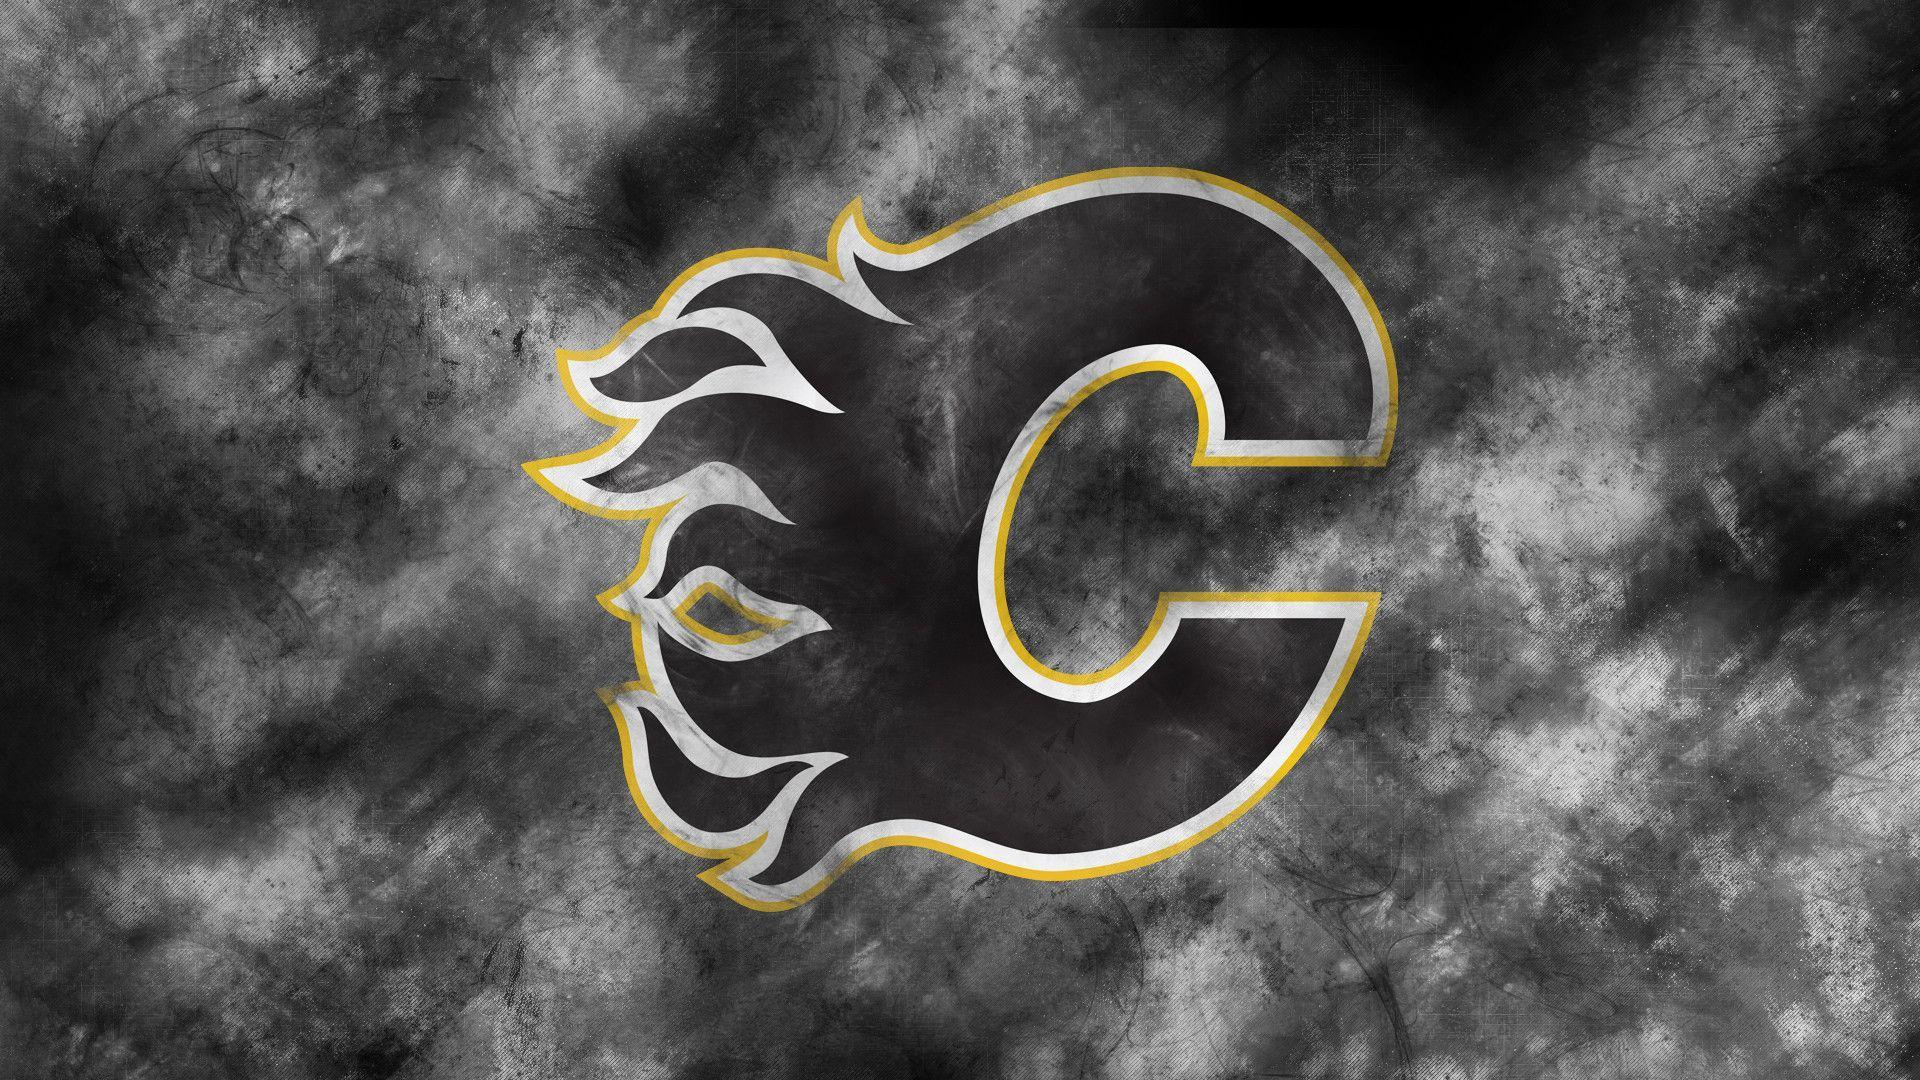 Calgary Flames Wallpapers 1920x1080